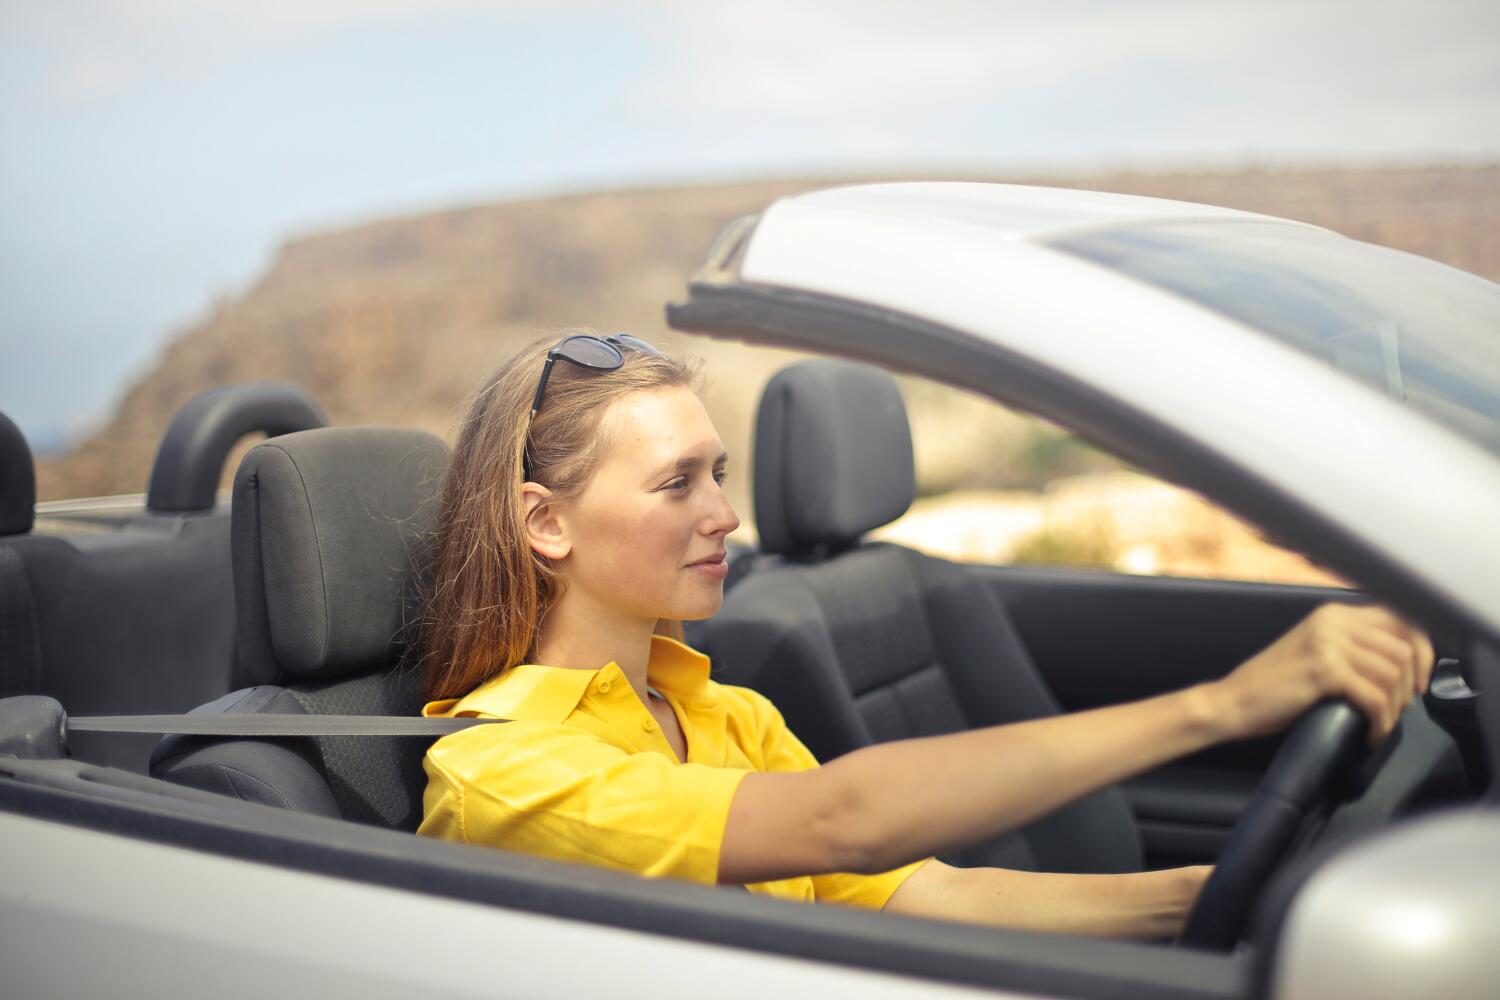 Female drivers on vision issues – what can we learn?